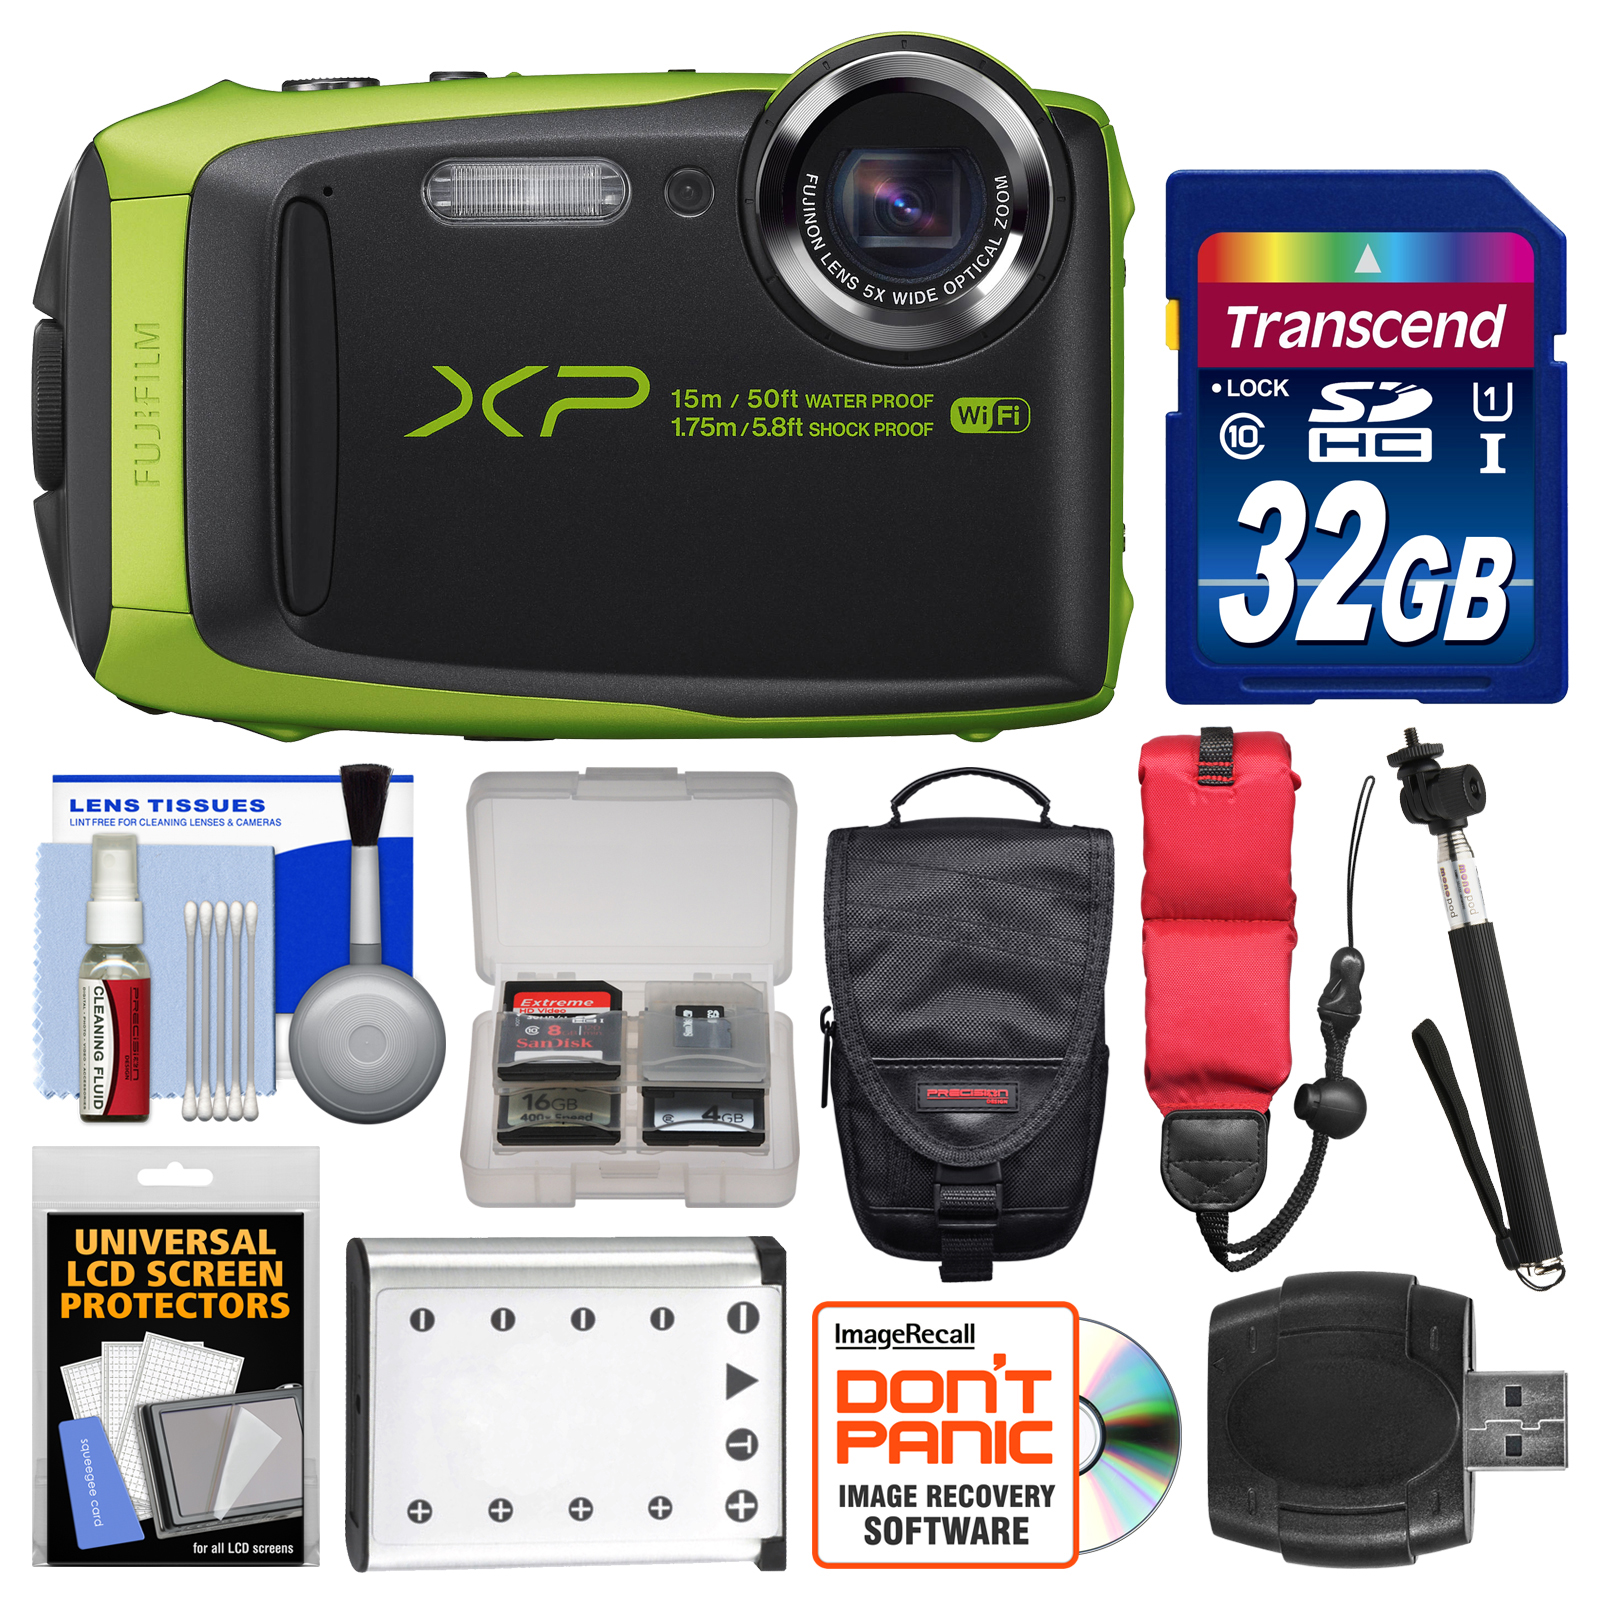 Fujifilm FinePix XP90 Shock & Waterproof Wi-Fi Digital Camera (Black/Lime Green) with 32GB Card + Case + Battery + Selfie Stick + Float Strap + Kit